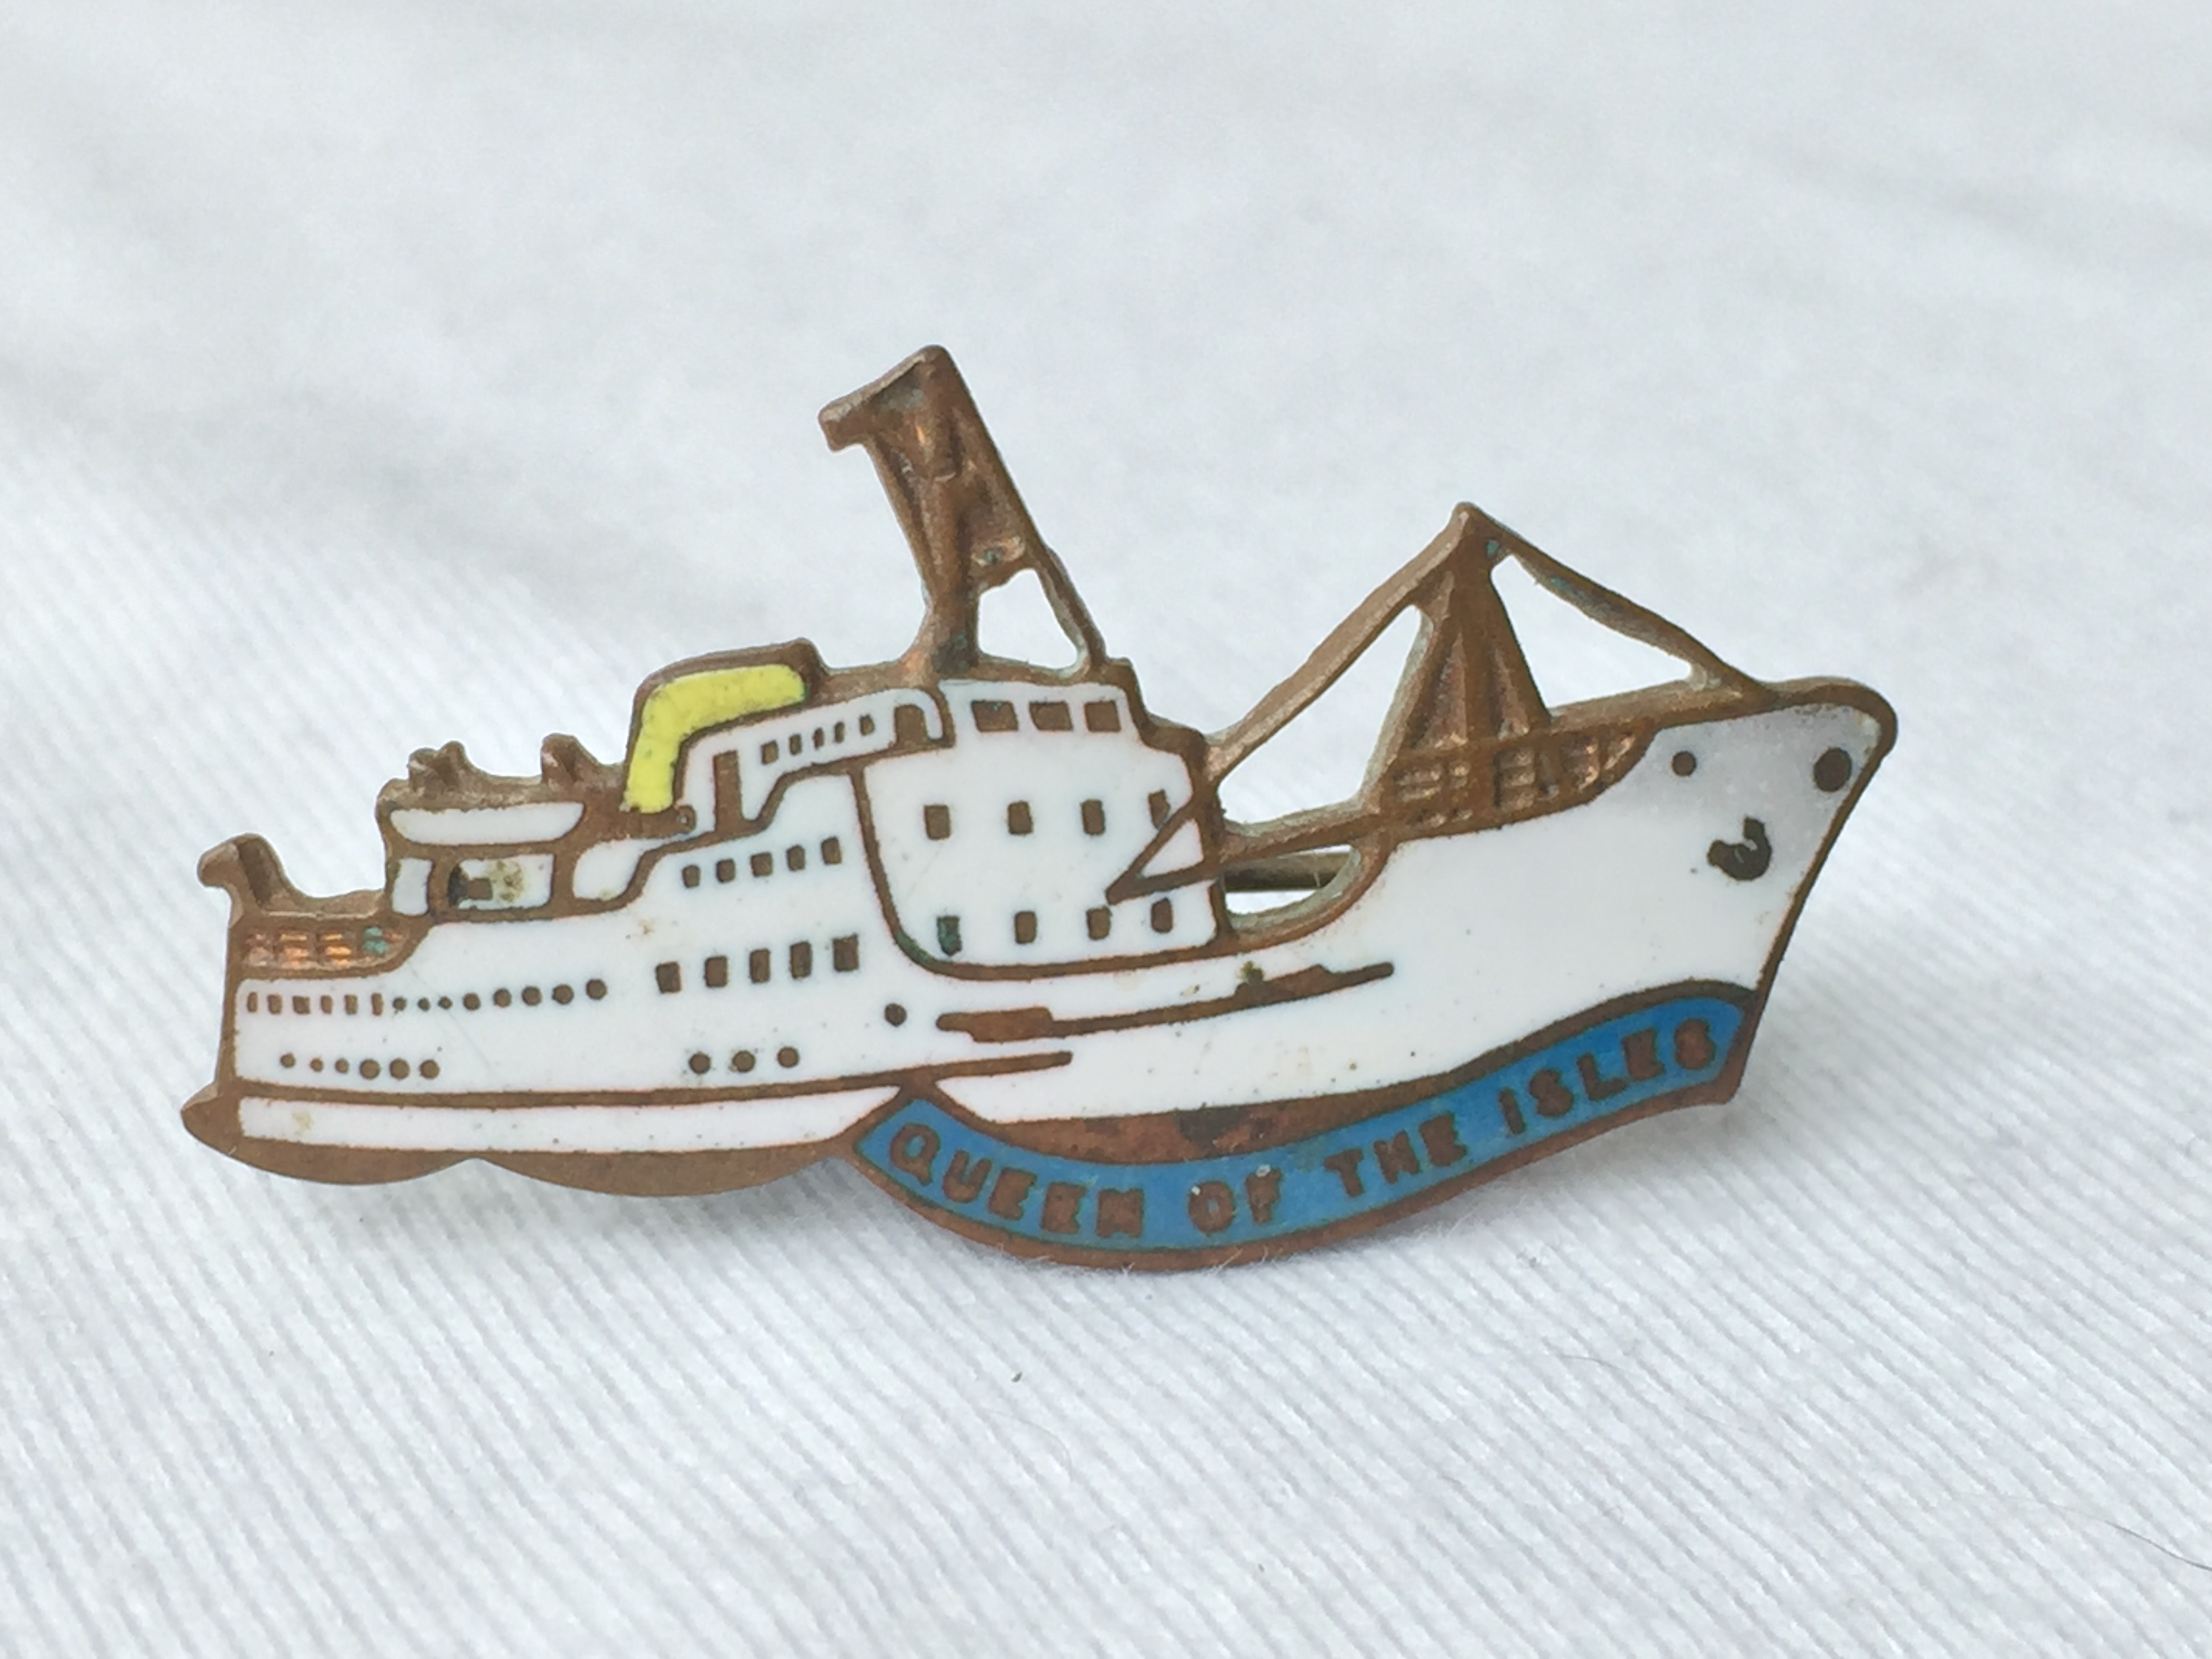 SHIP SHAPE LAPEL PIN FROM THE FERRY CROSSING SERVICE VESSEL THE QUEEN OF THE ISLES